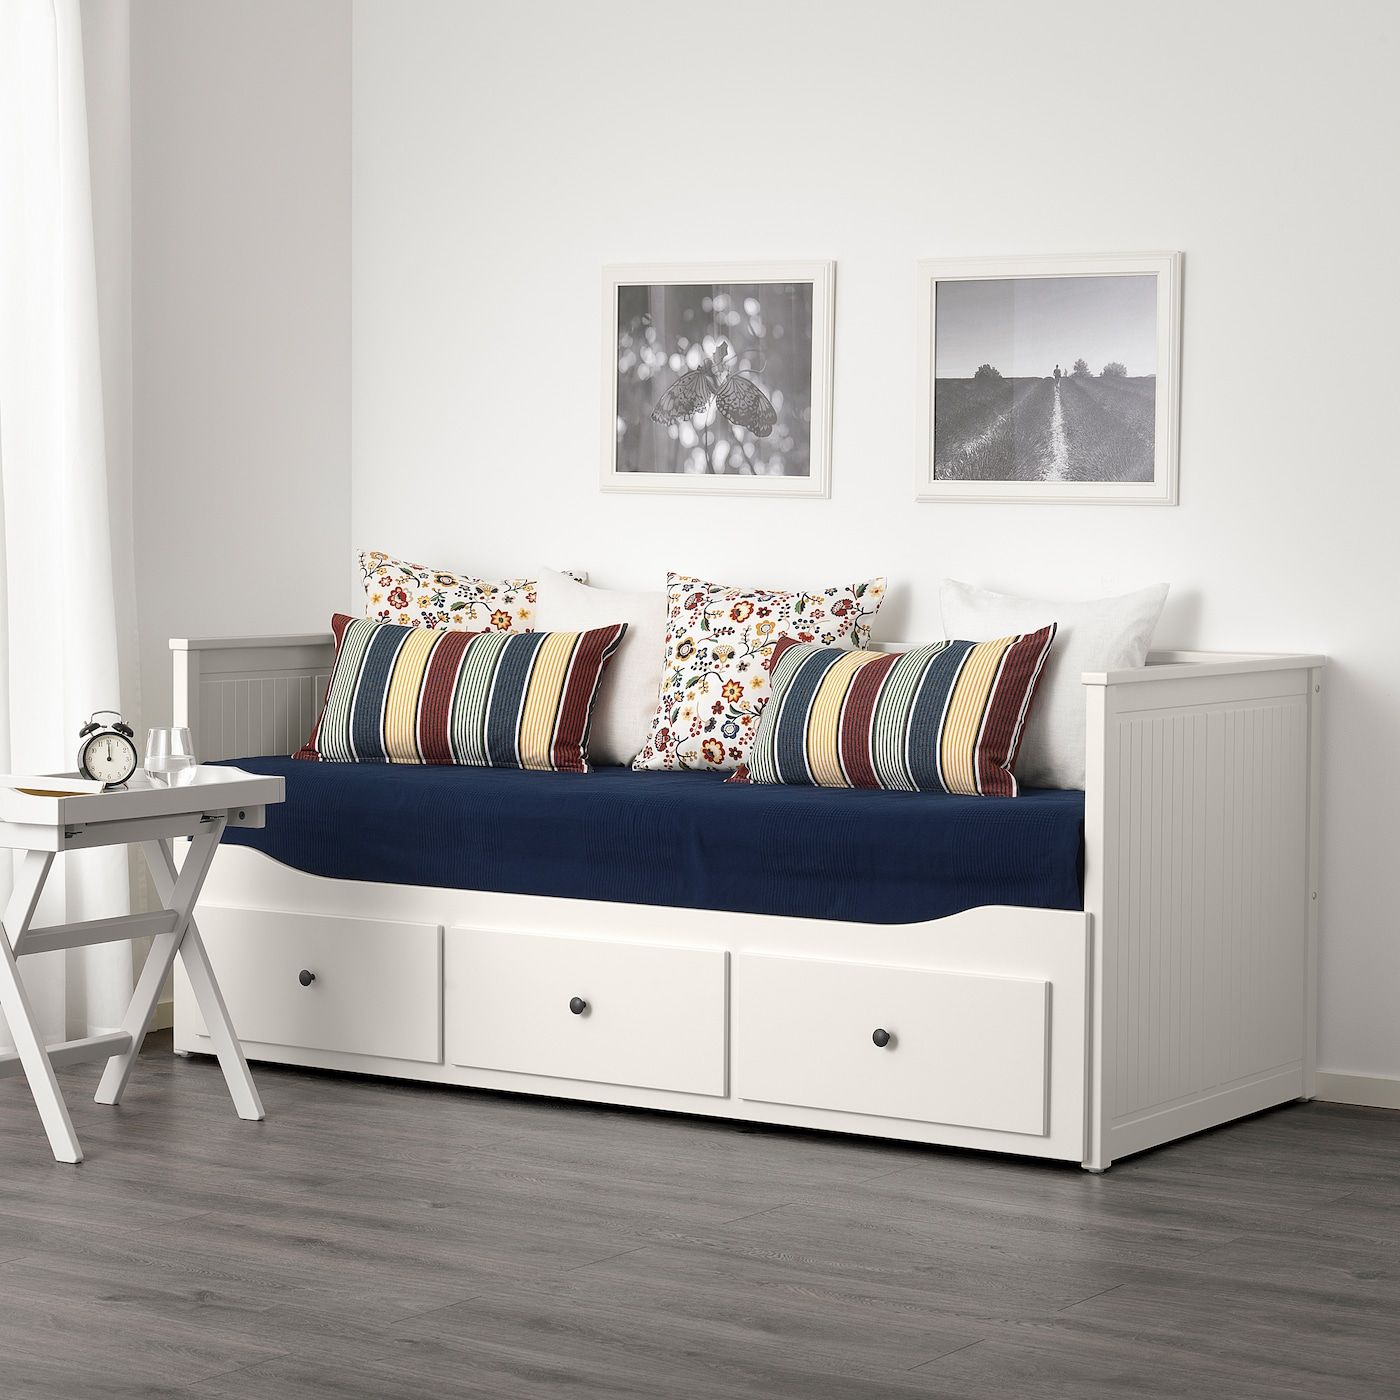 Hemnes Daybed Frame With 3 Drawers White Twin Ikea In 2020 Ikea Hemnes Daybed Day Bed Frame Hemnes Day Bed